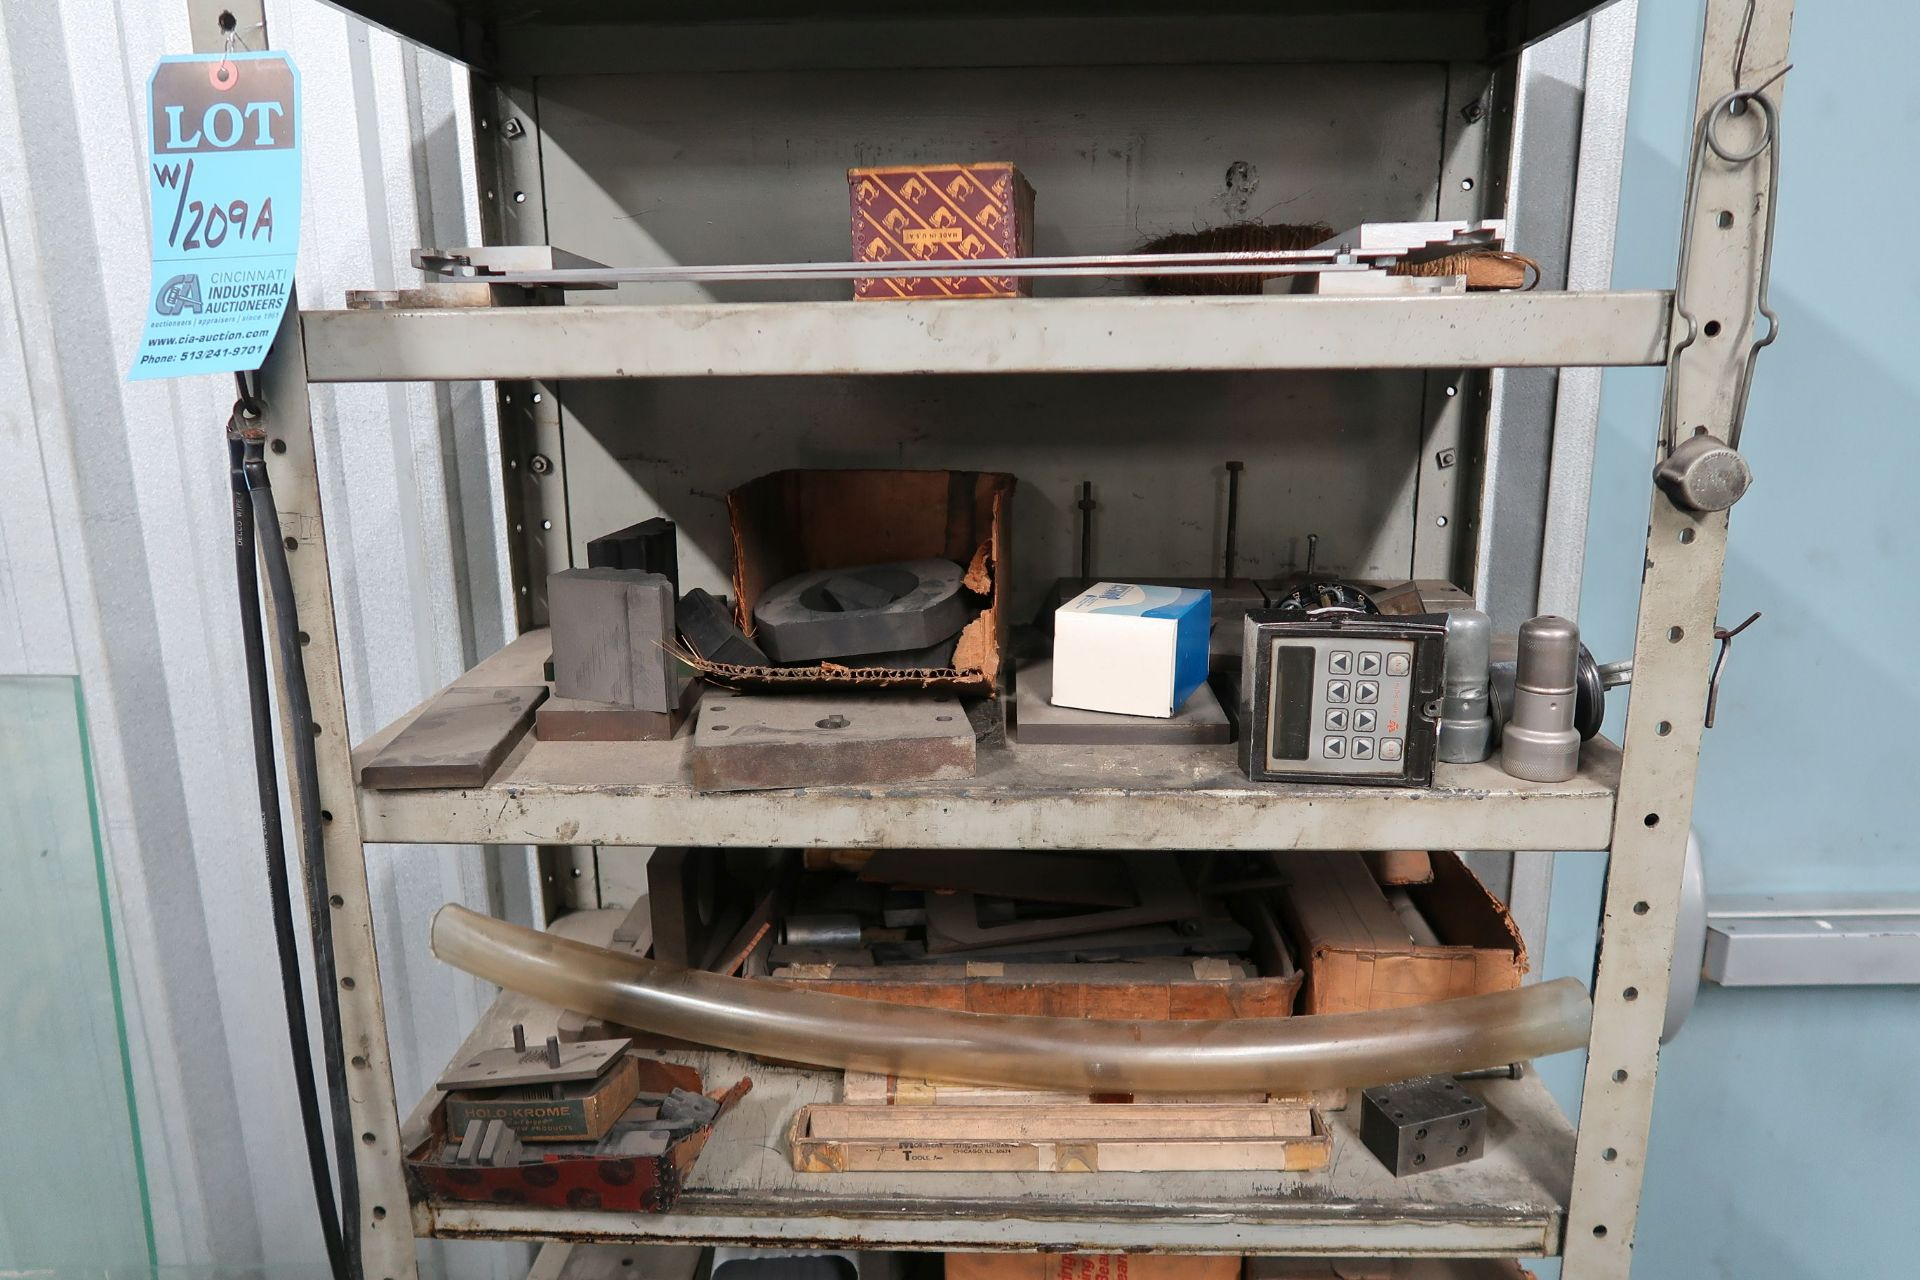 SHELVES MISC. EDM TOOLING & PARTS - Image 6 of 7